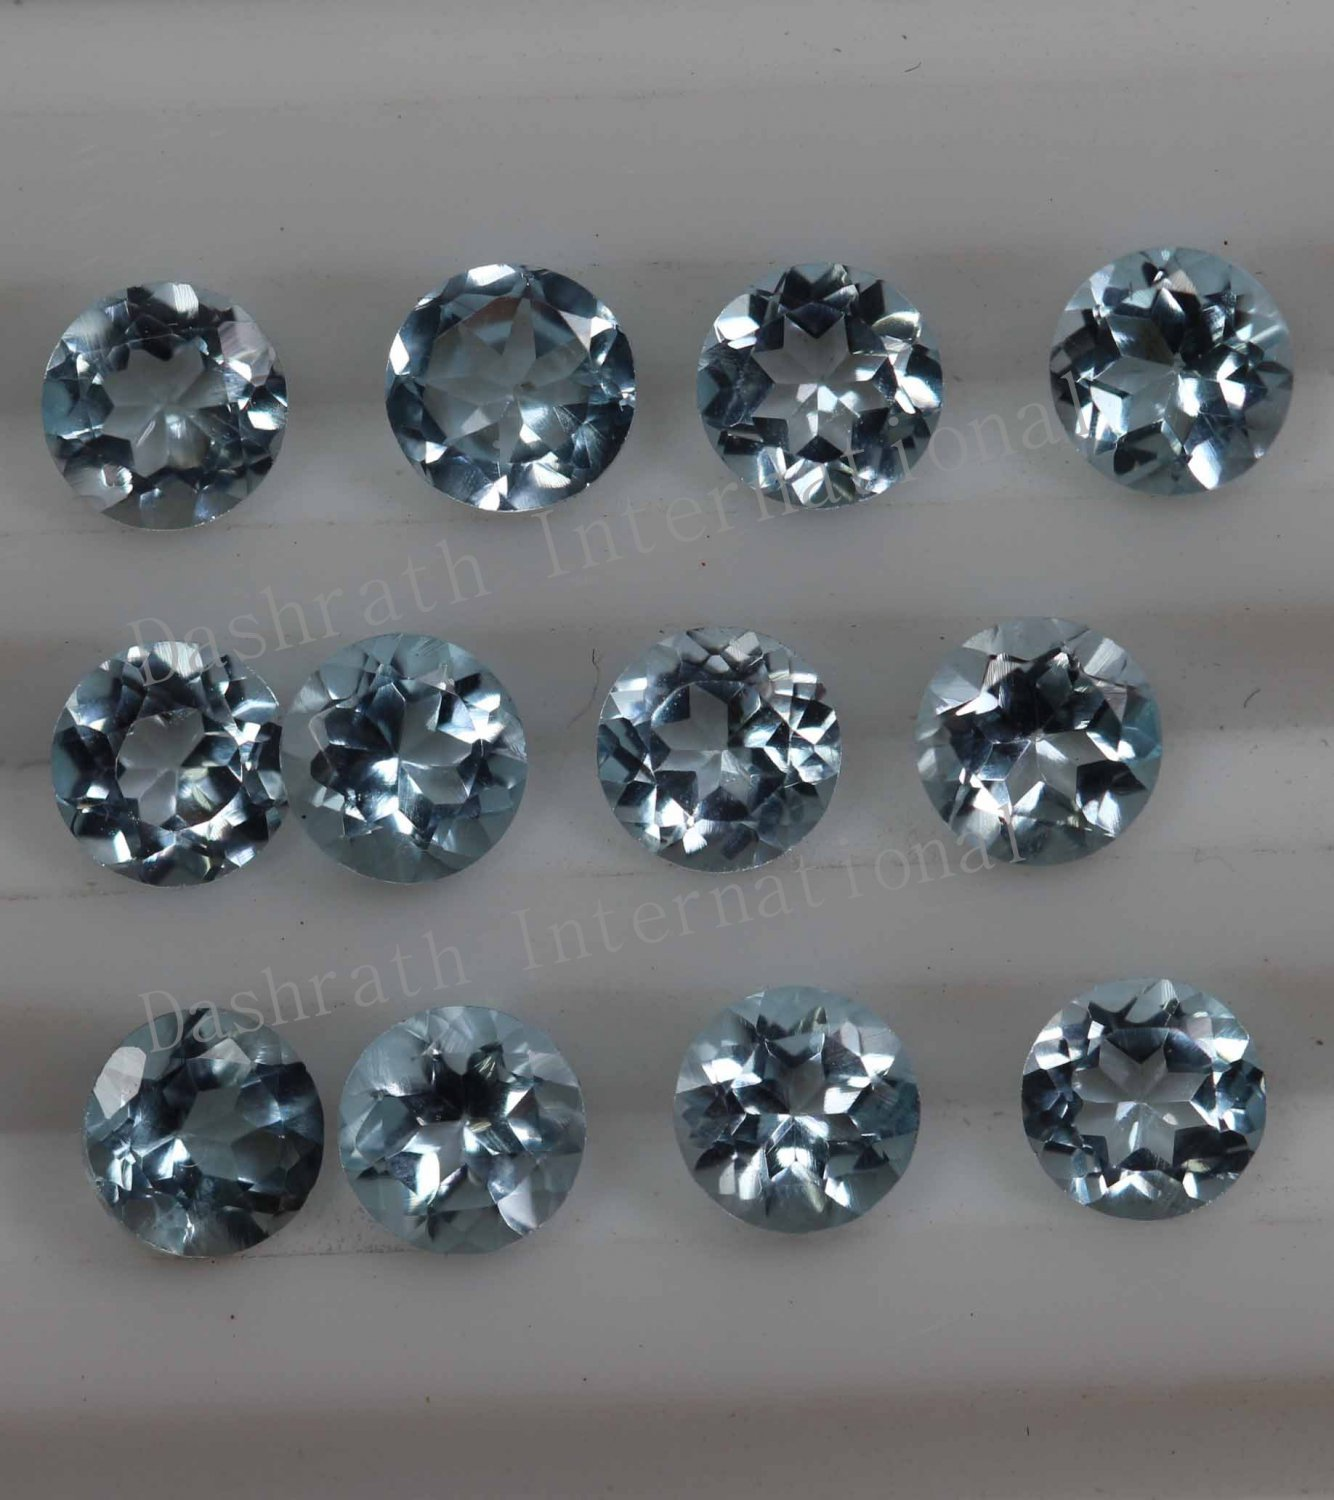 5mmNatural Sky Blue Topaz Faceted Cut Round 25 Pieces Lot Blue Color  Top Quality Loose Gemstone